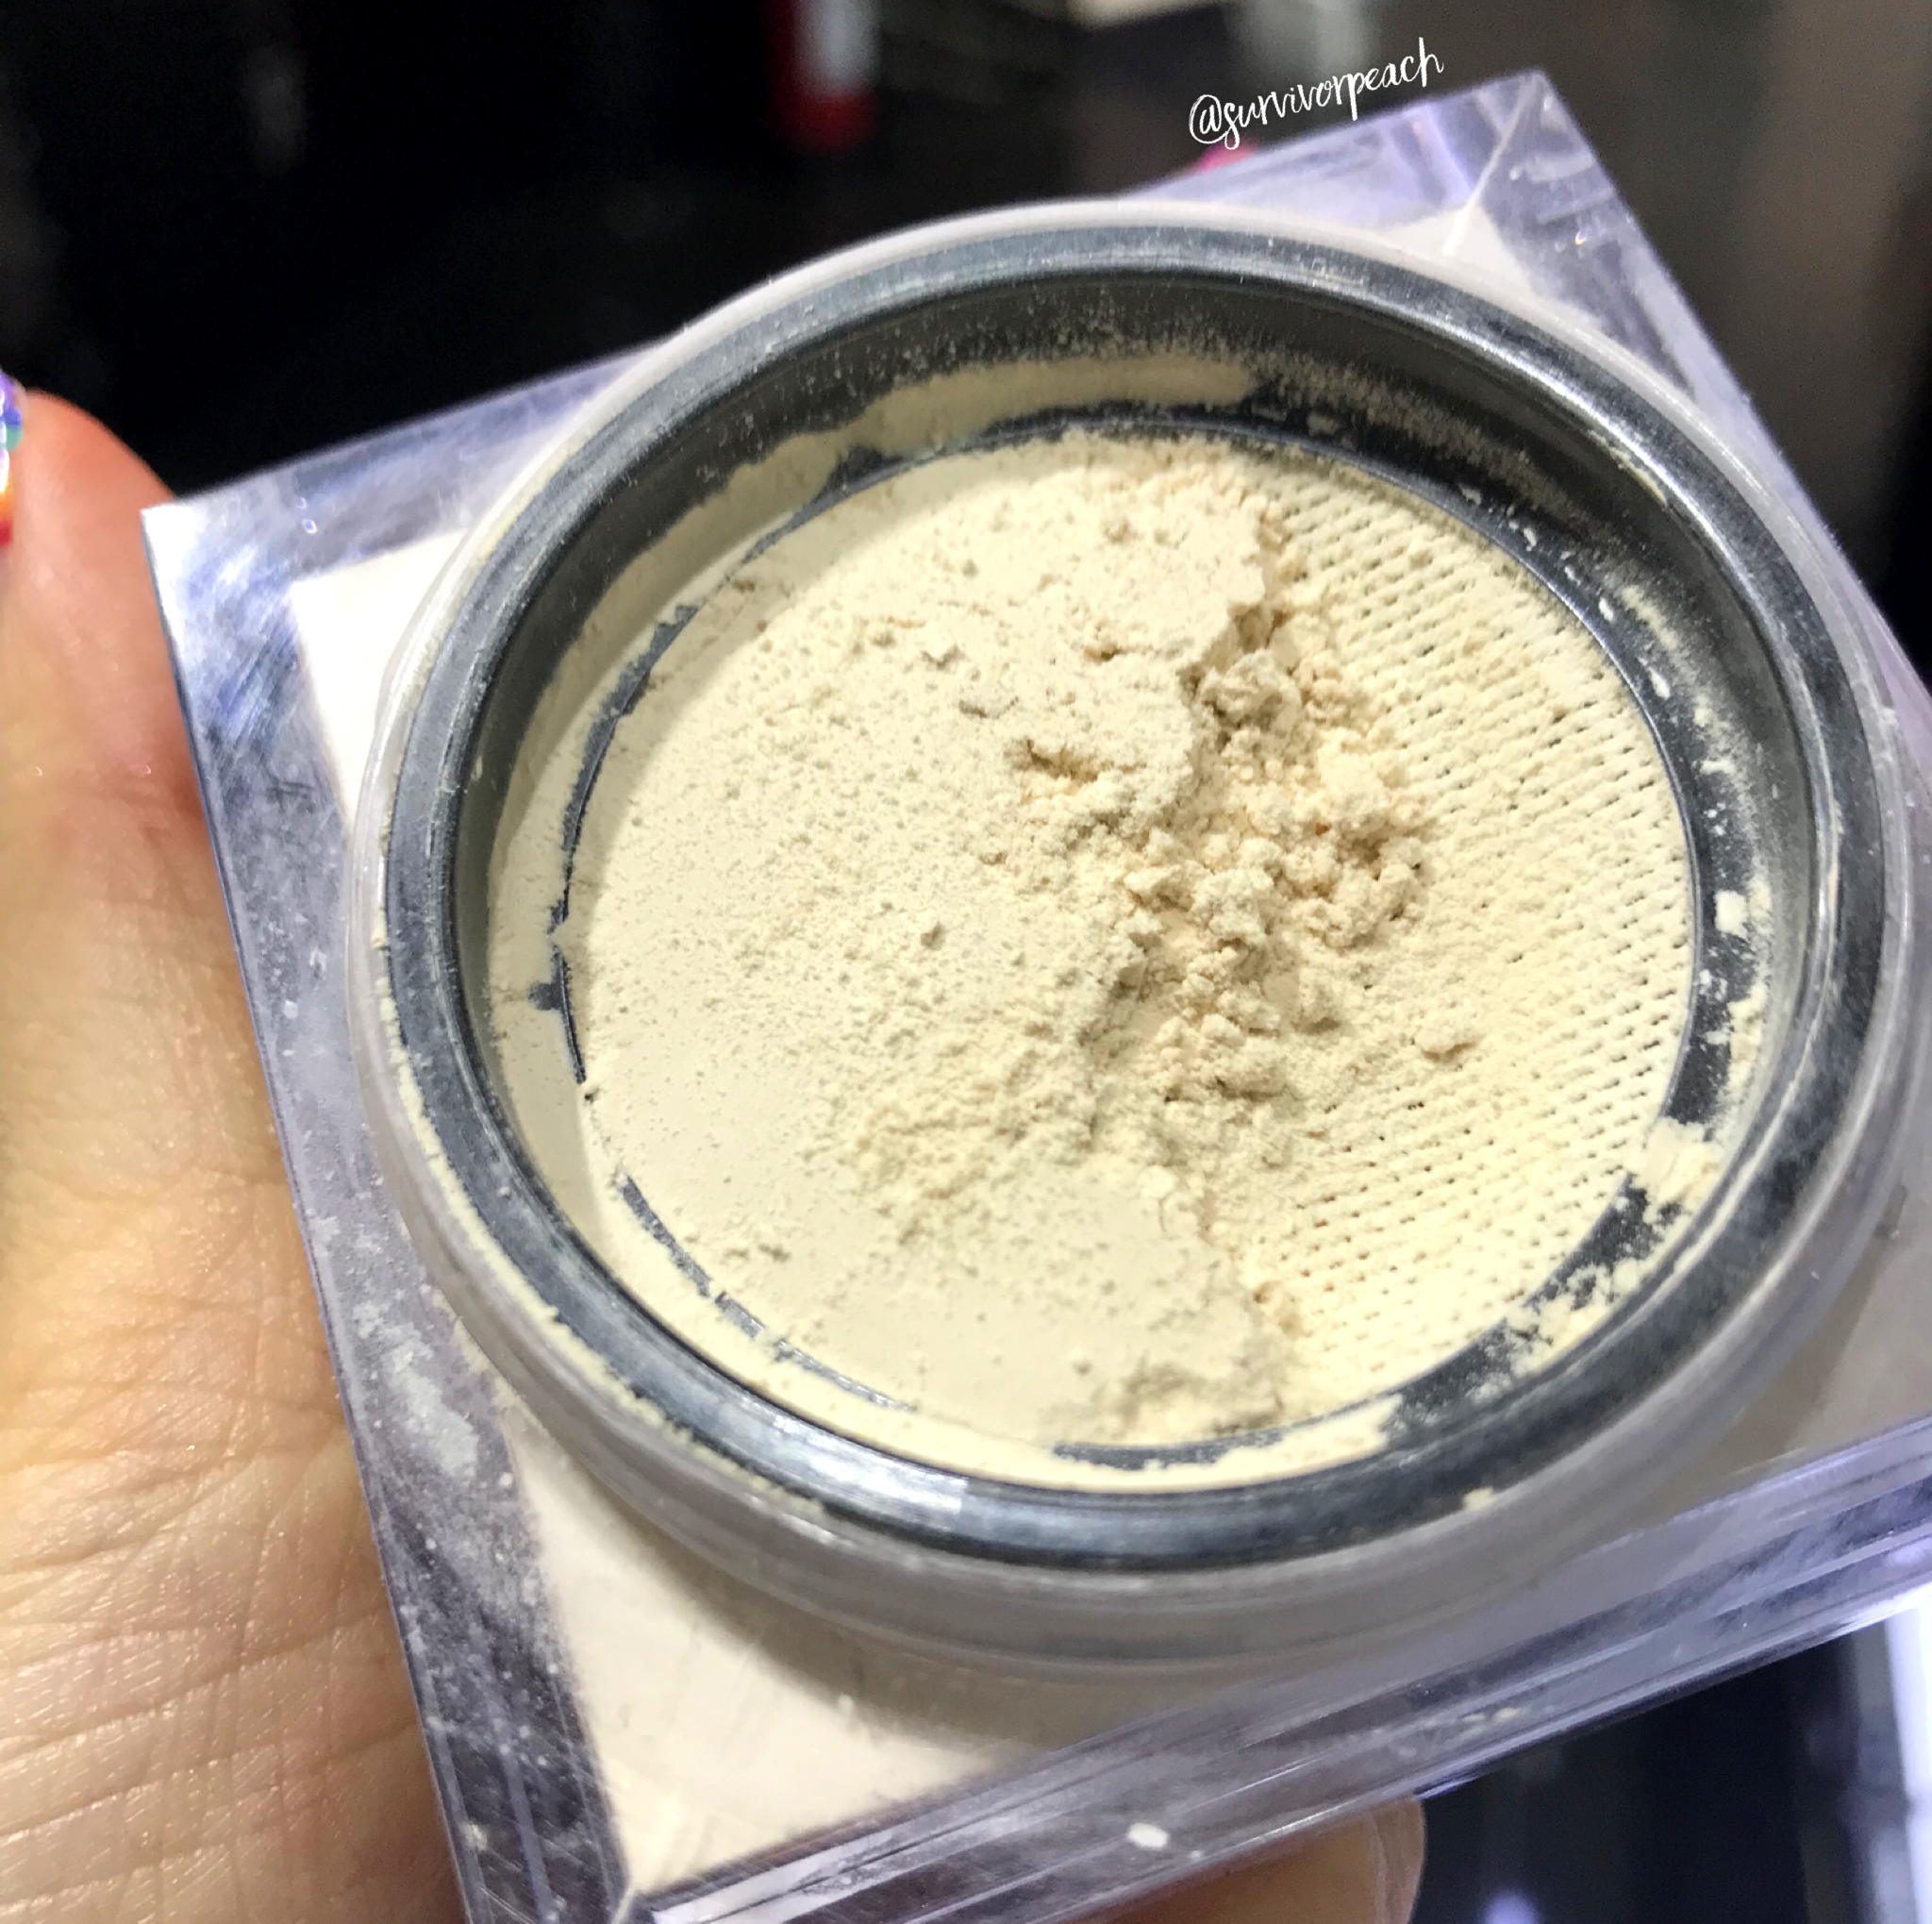 Huda Beauty Easy Bake Powder - Pound Cake